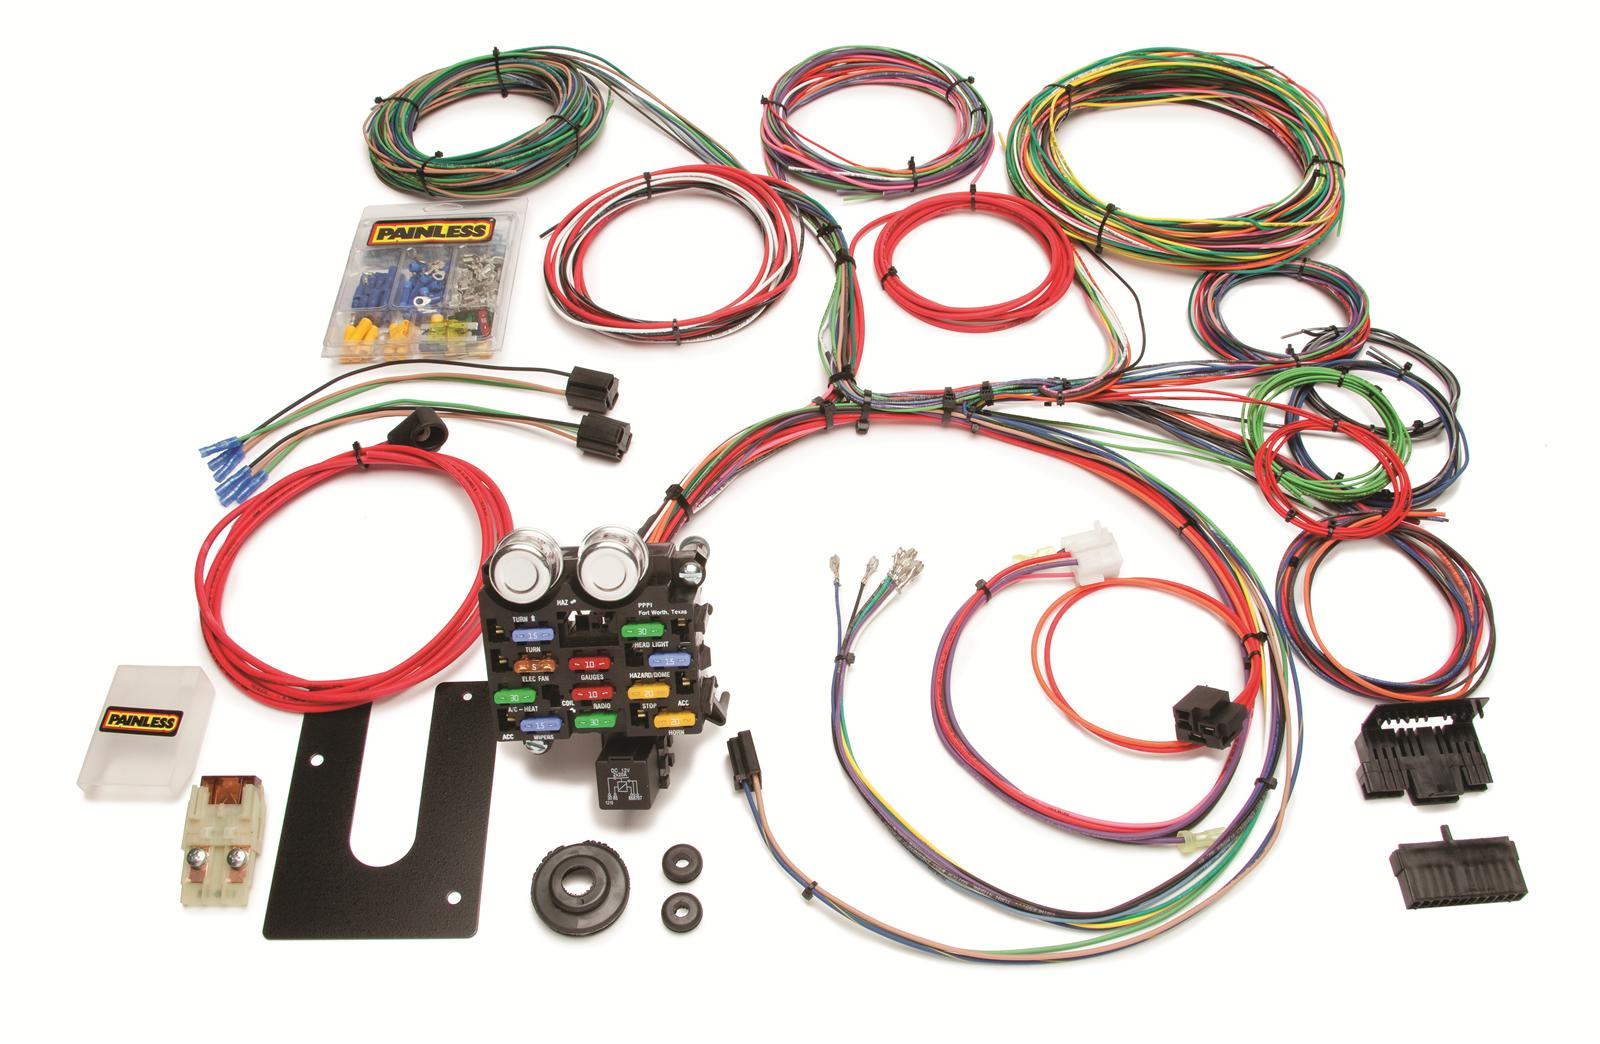 prf 10101_xl painless performance 21 circuit universal harnesses 10101 free painless wiring harness jeep yj at bakdesigns.co